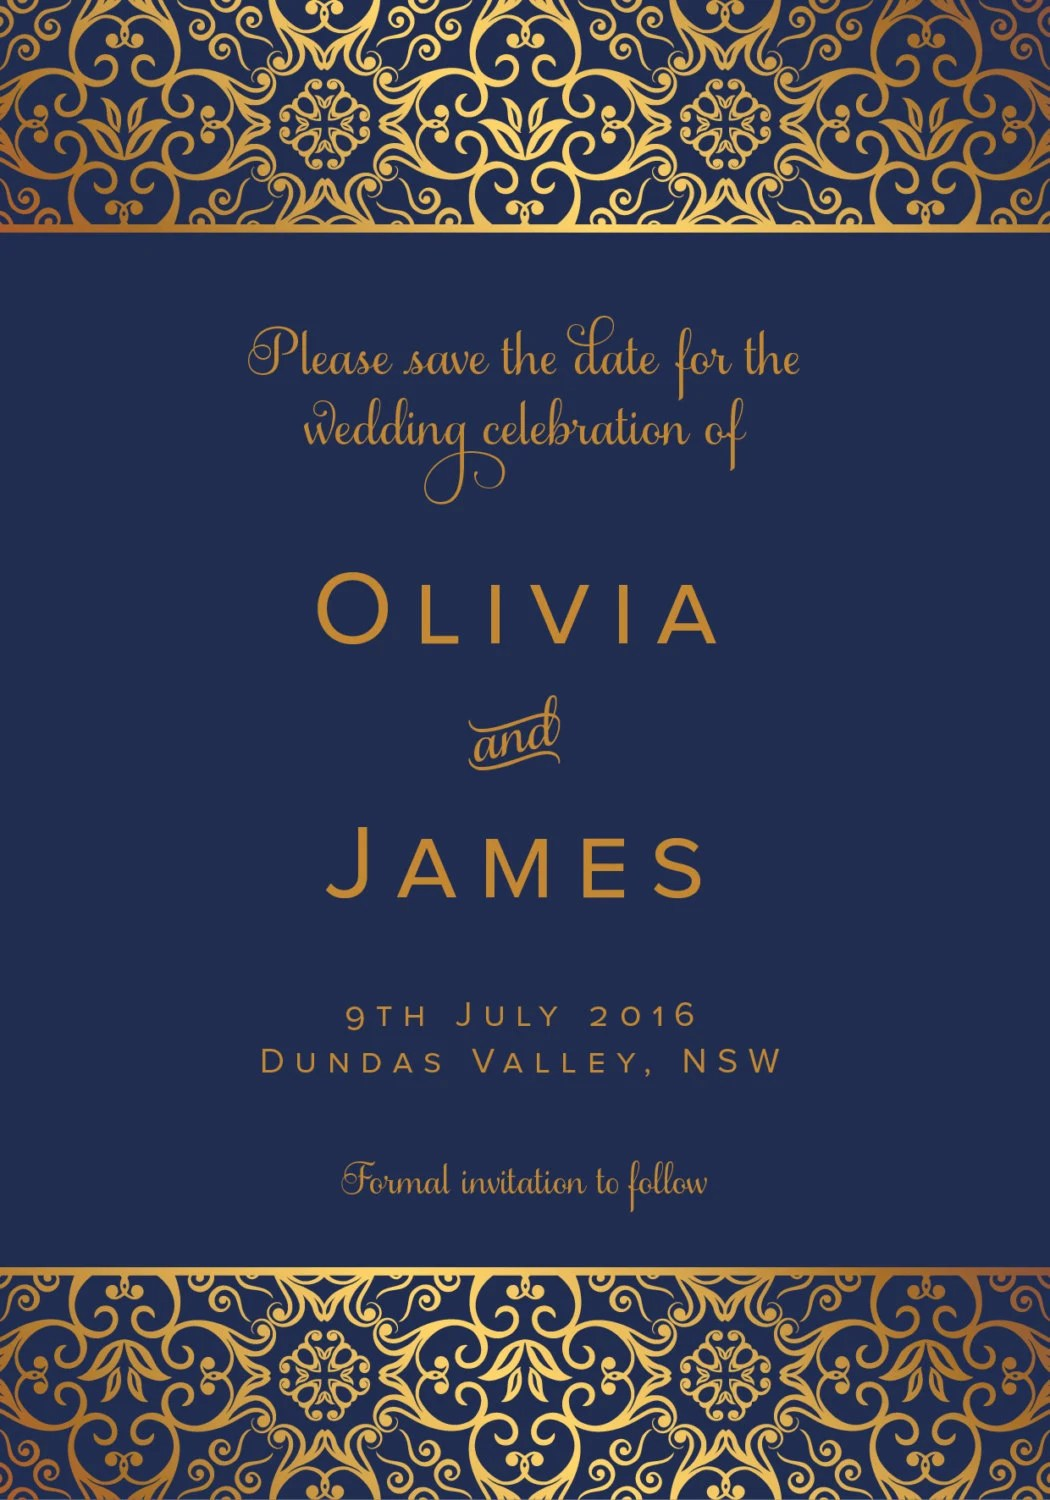 Navy Blue Amp Gold Save The Date Wedding Card By Rachaelree On Etsy